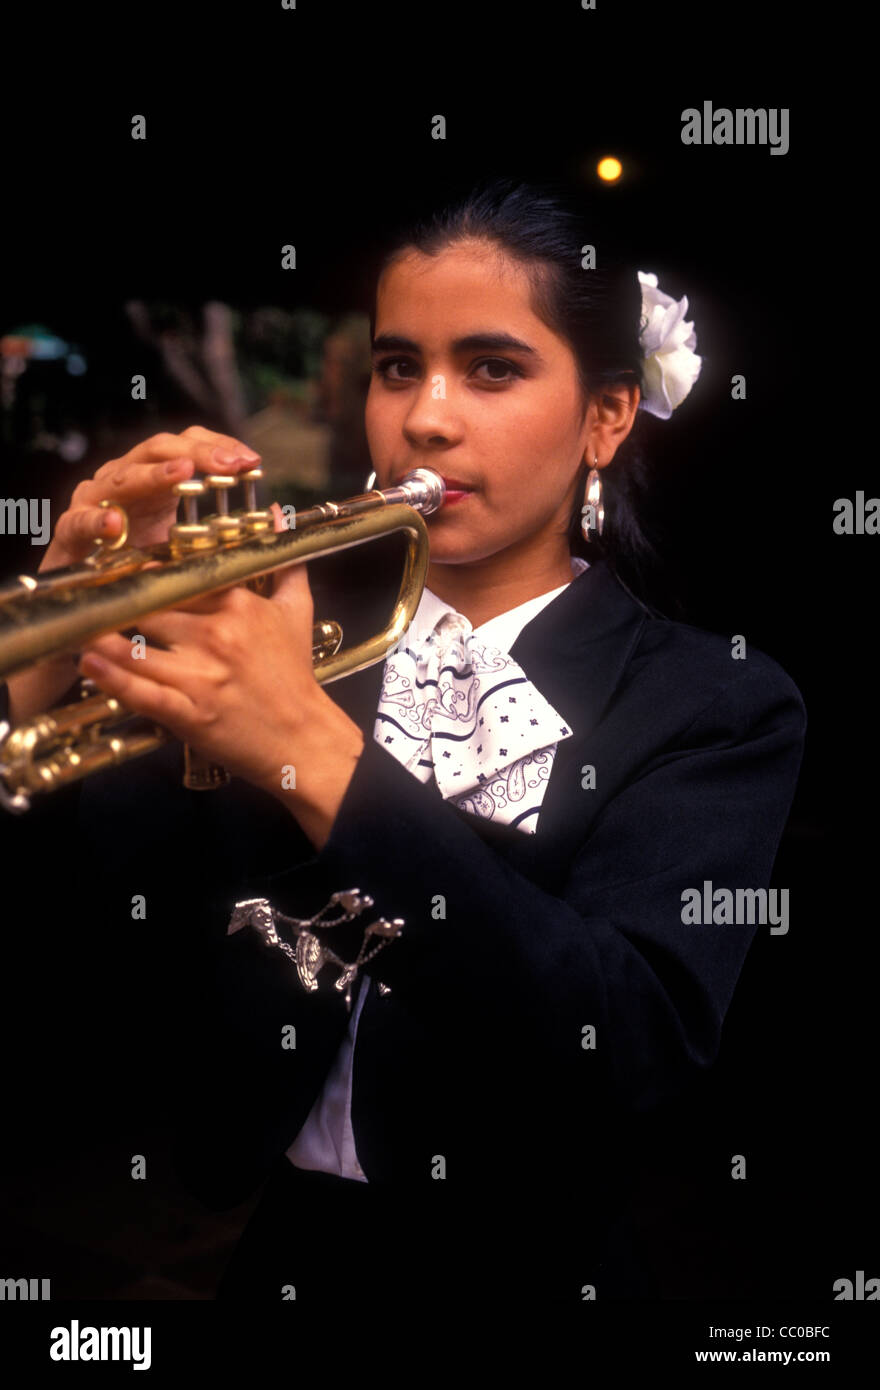 1, one, Mexican woman playing horn, horn player, mariachi band member, Tlaquepaque, Jalisco State, Mexico - Stock Image